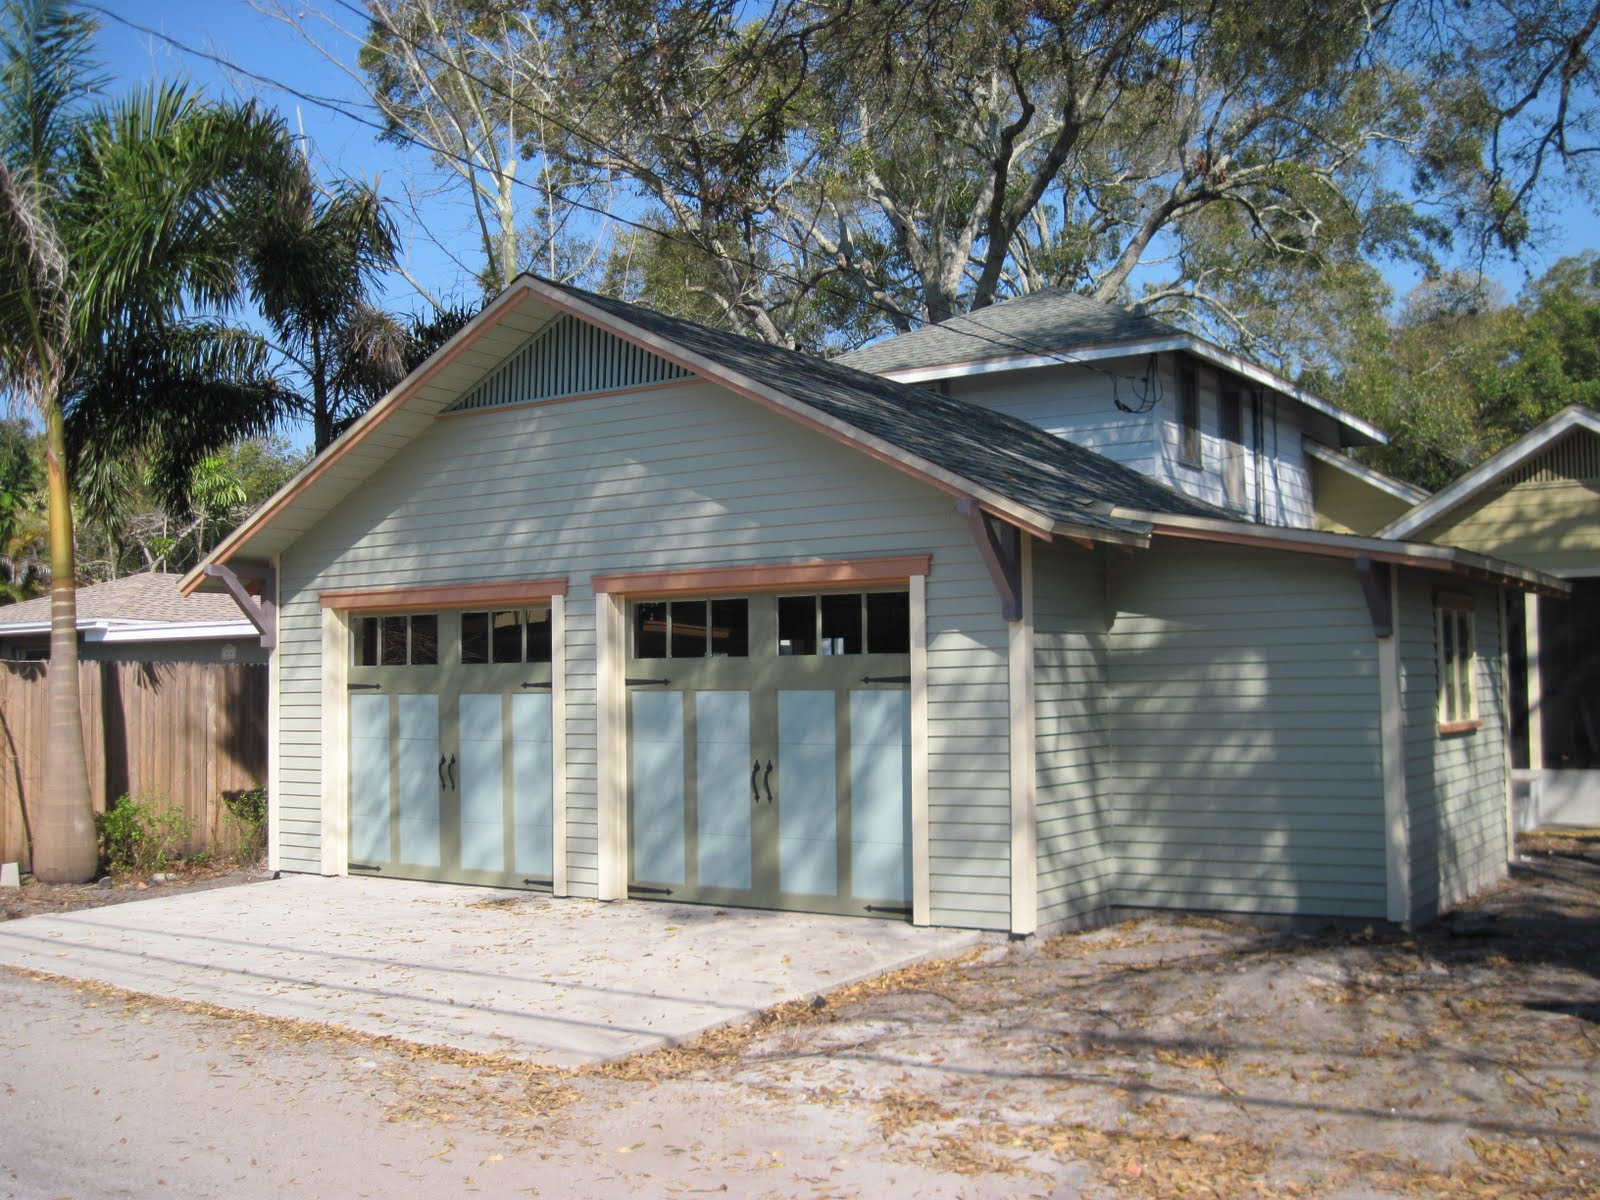 Two Car Garage With Shed Extension Historic Shed Florida